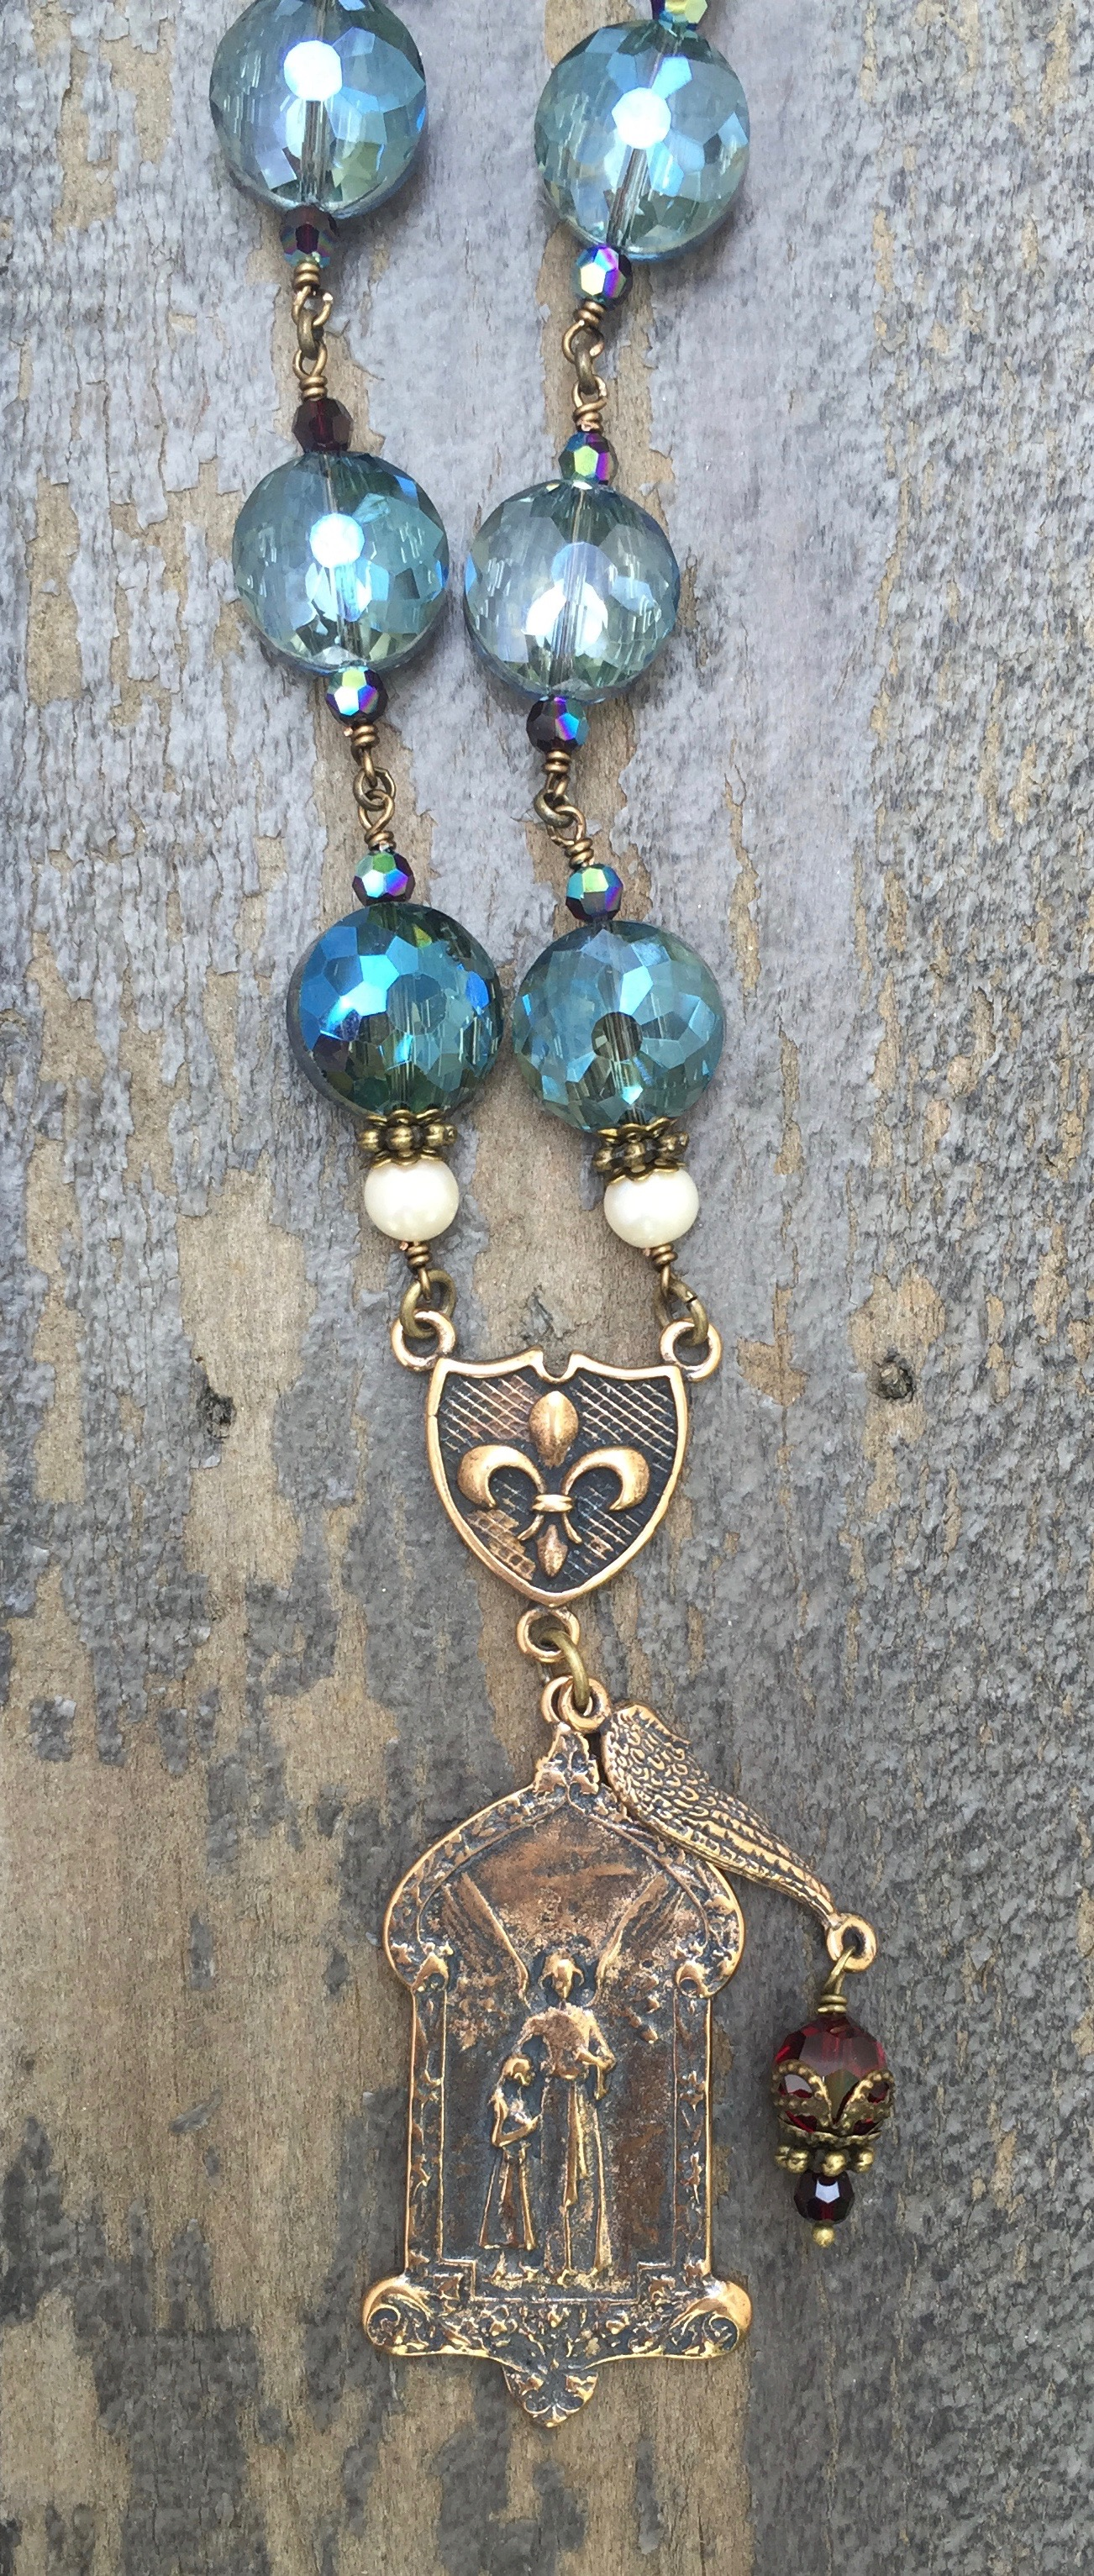 Necklace Of Guardian Angels Seraphym Designs